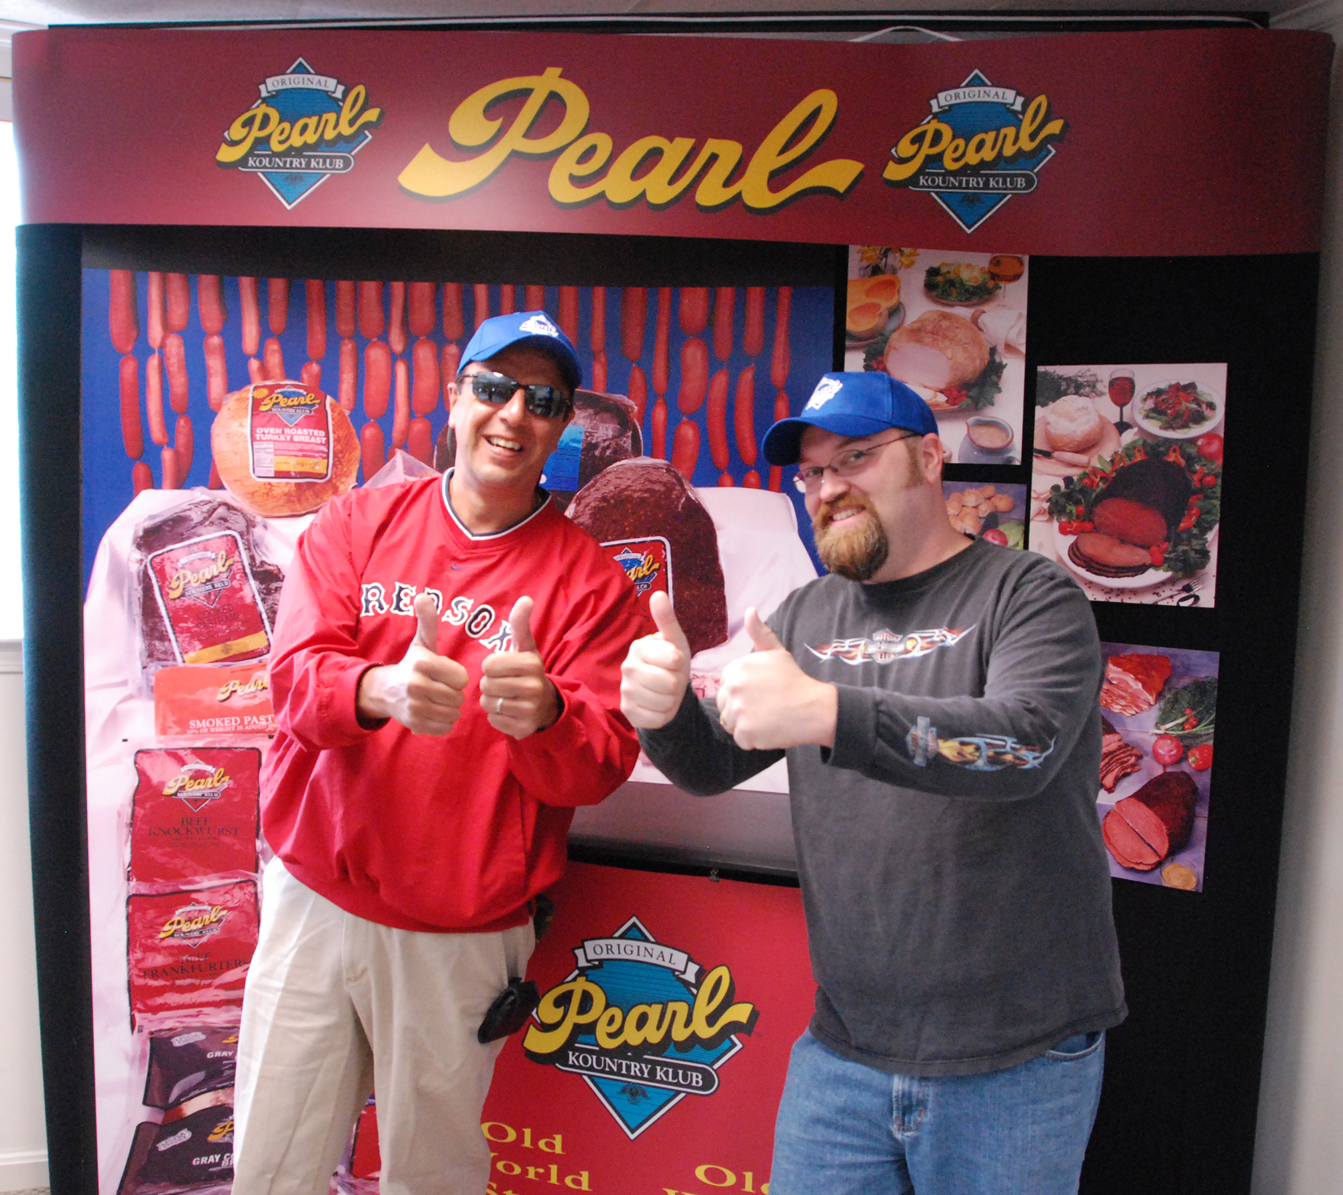 After our Tour of Pearl Meat Packing we give it Two Thumbs Up!